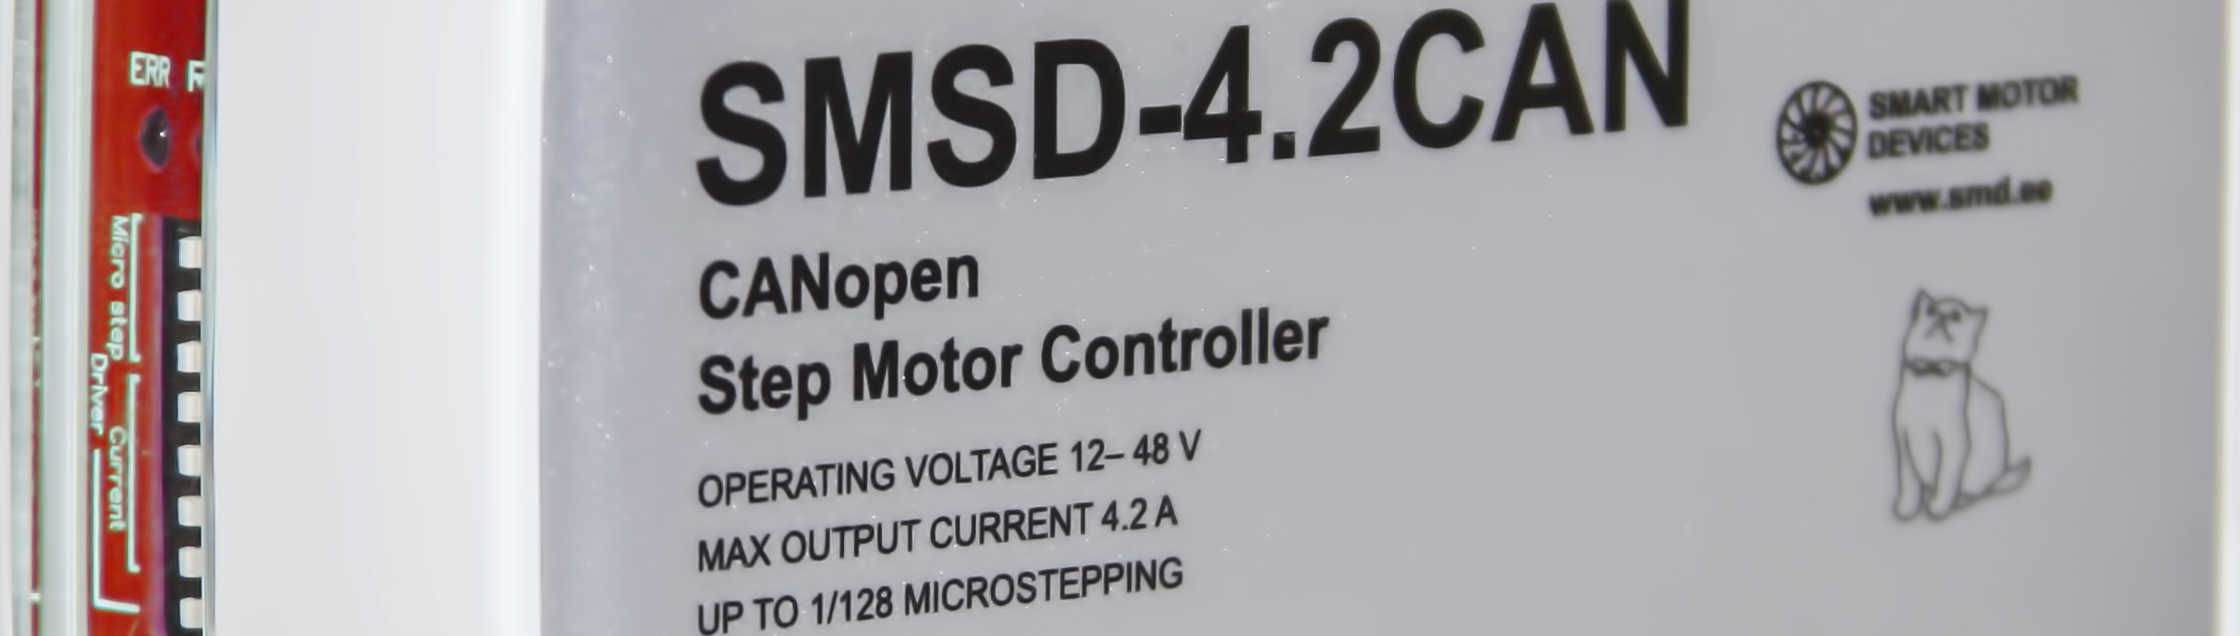 Programmable step motor controller SMSD-4.2 CANopen